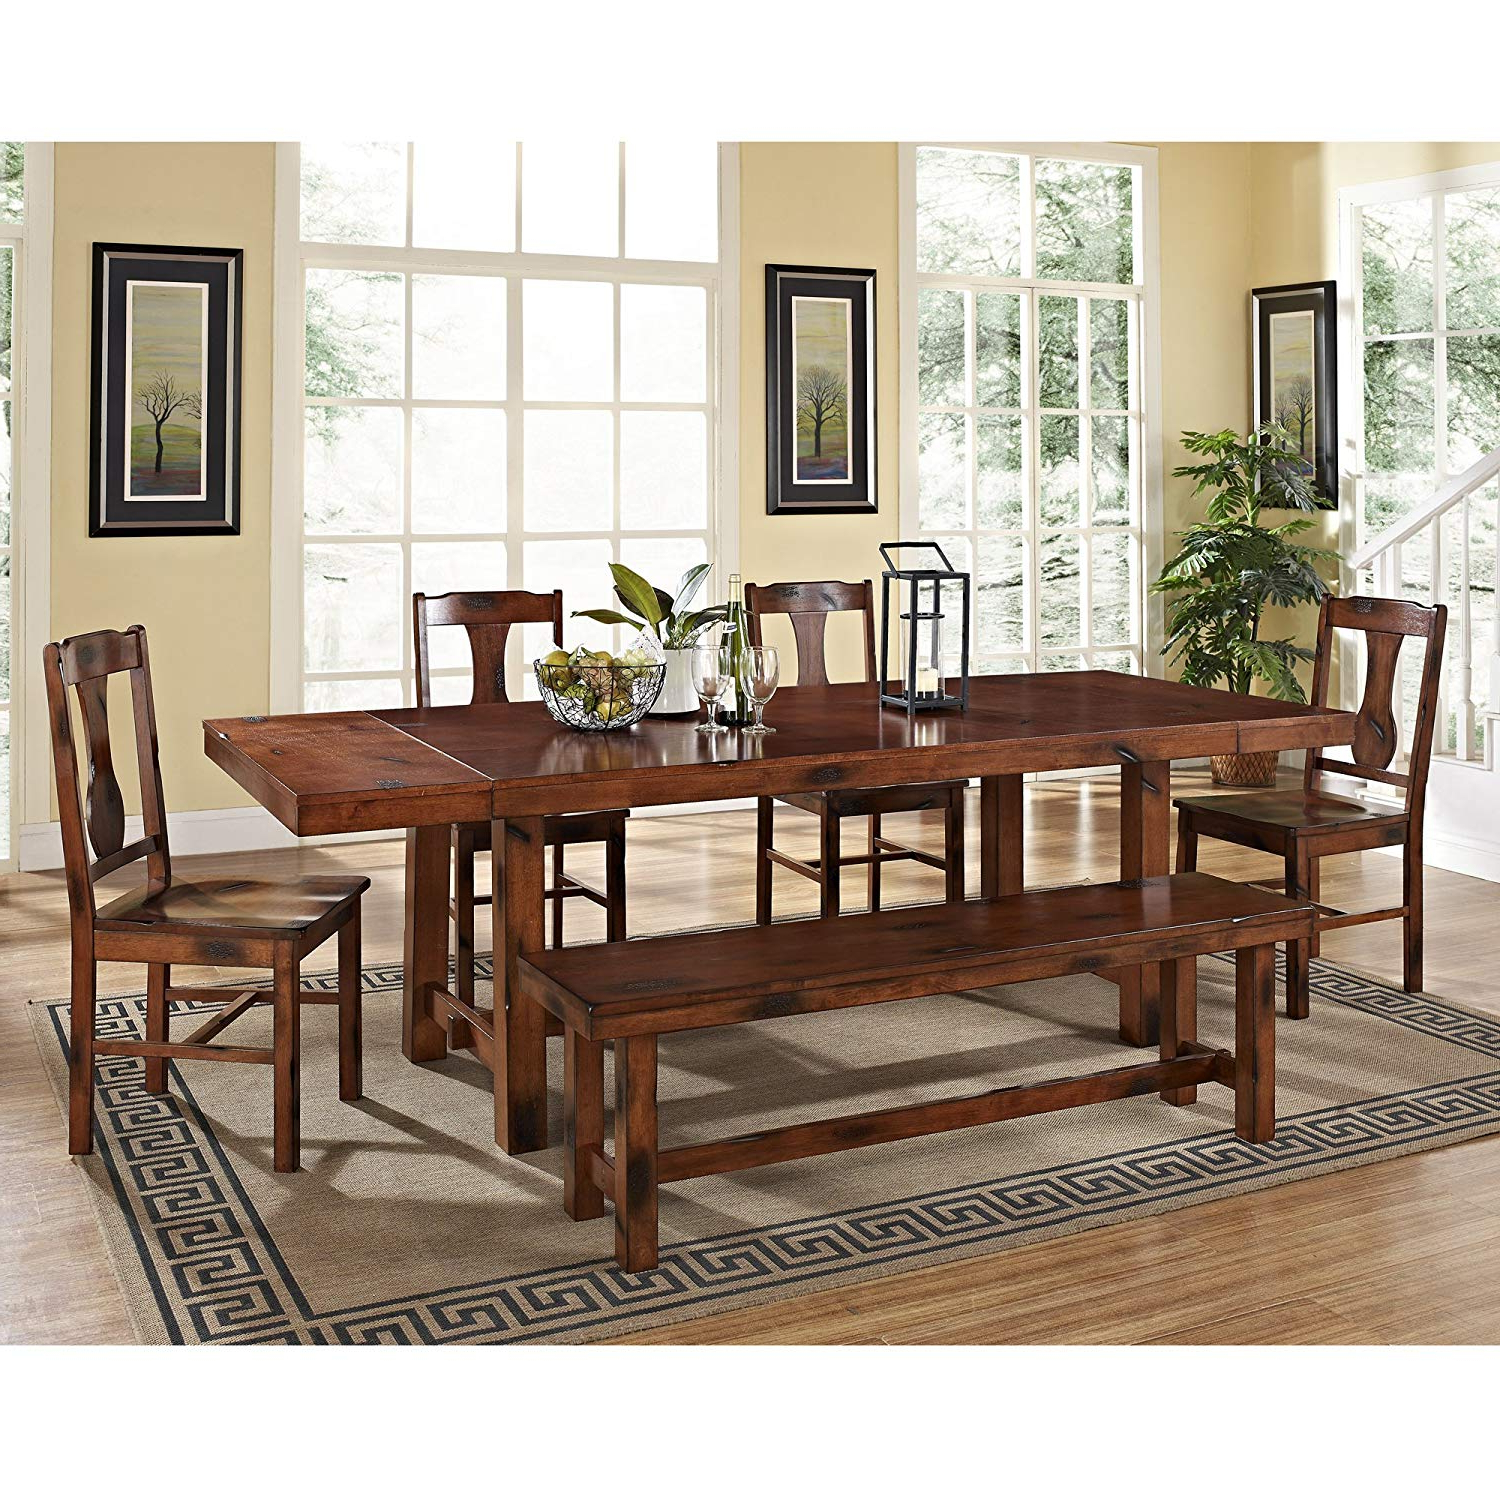 6 Piece Solid Wood Dining Set, Dark Oak With Regard To Fashionable West Hill Family Table 3 Piece Dining Sets (View 6 of 20)